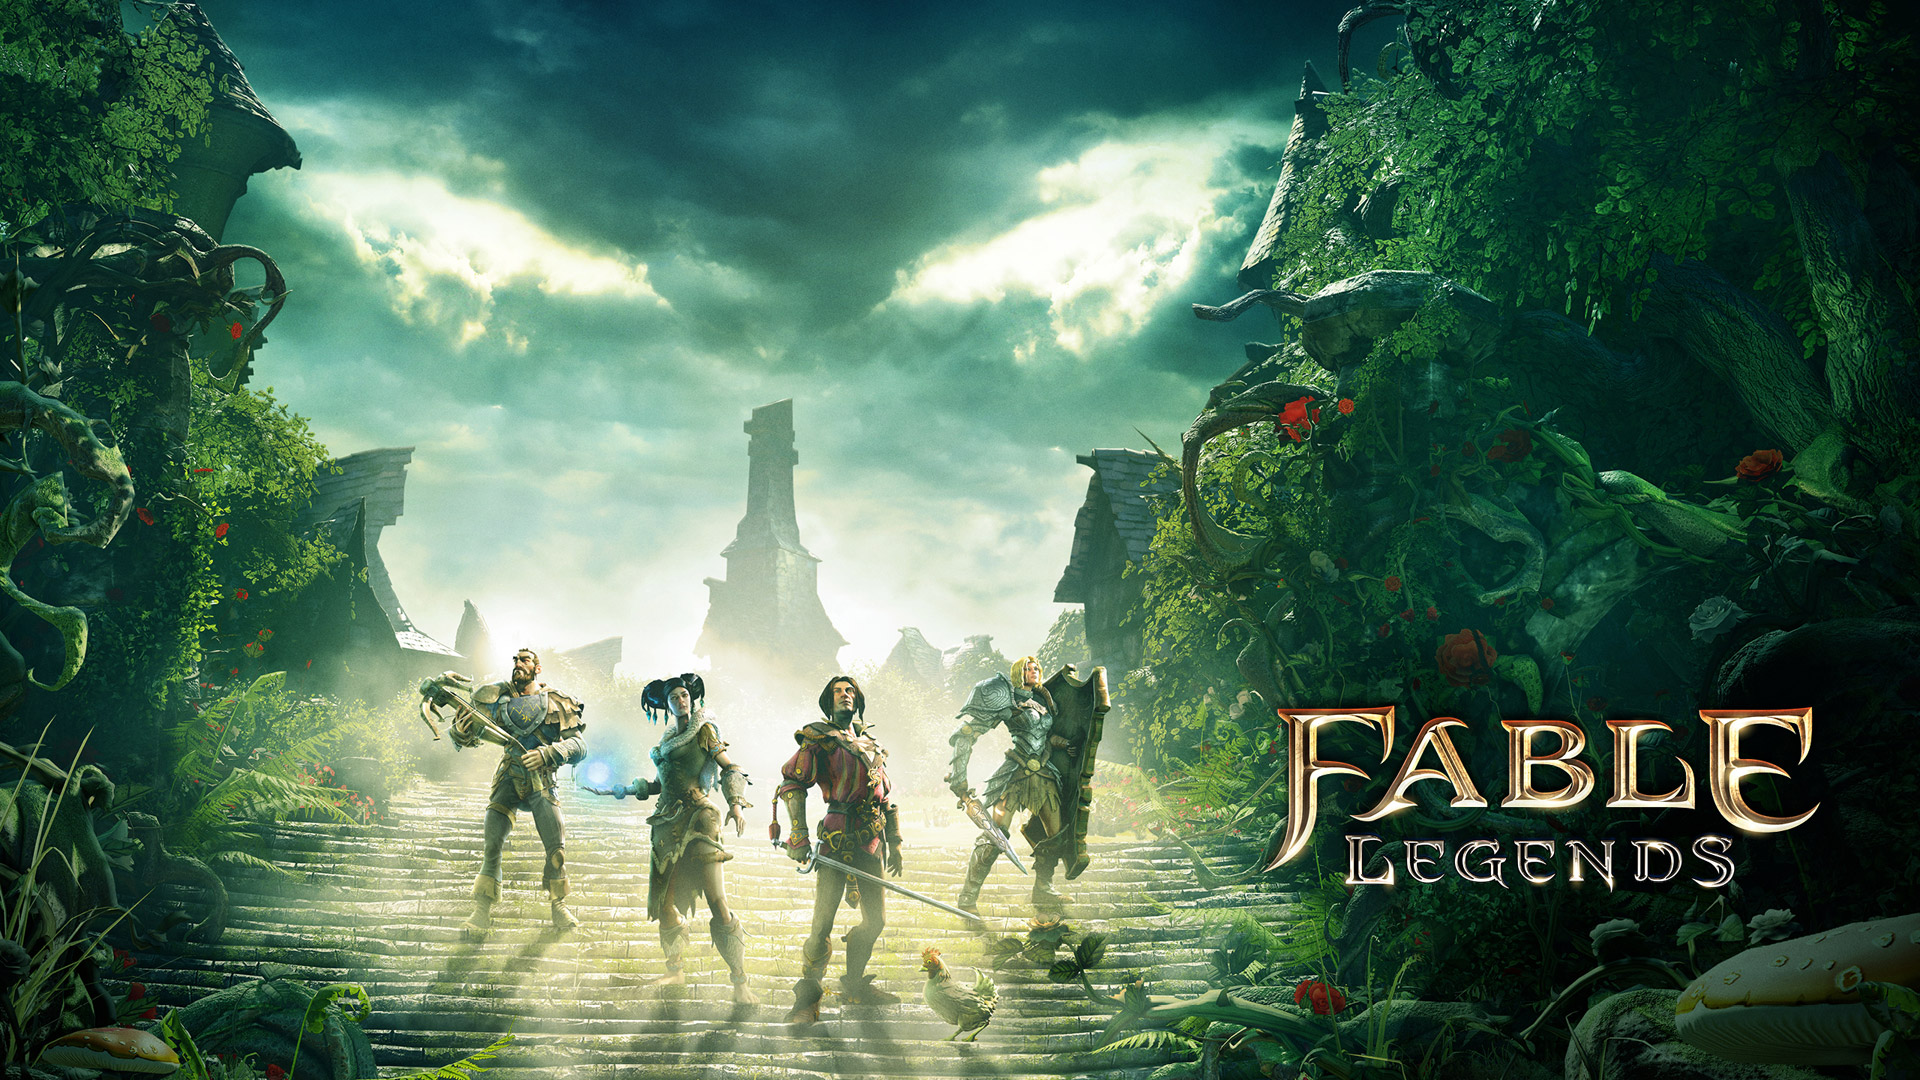 Fable Legends Wallpaper in 1920x1080